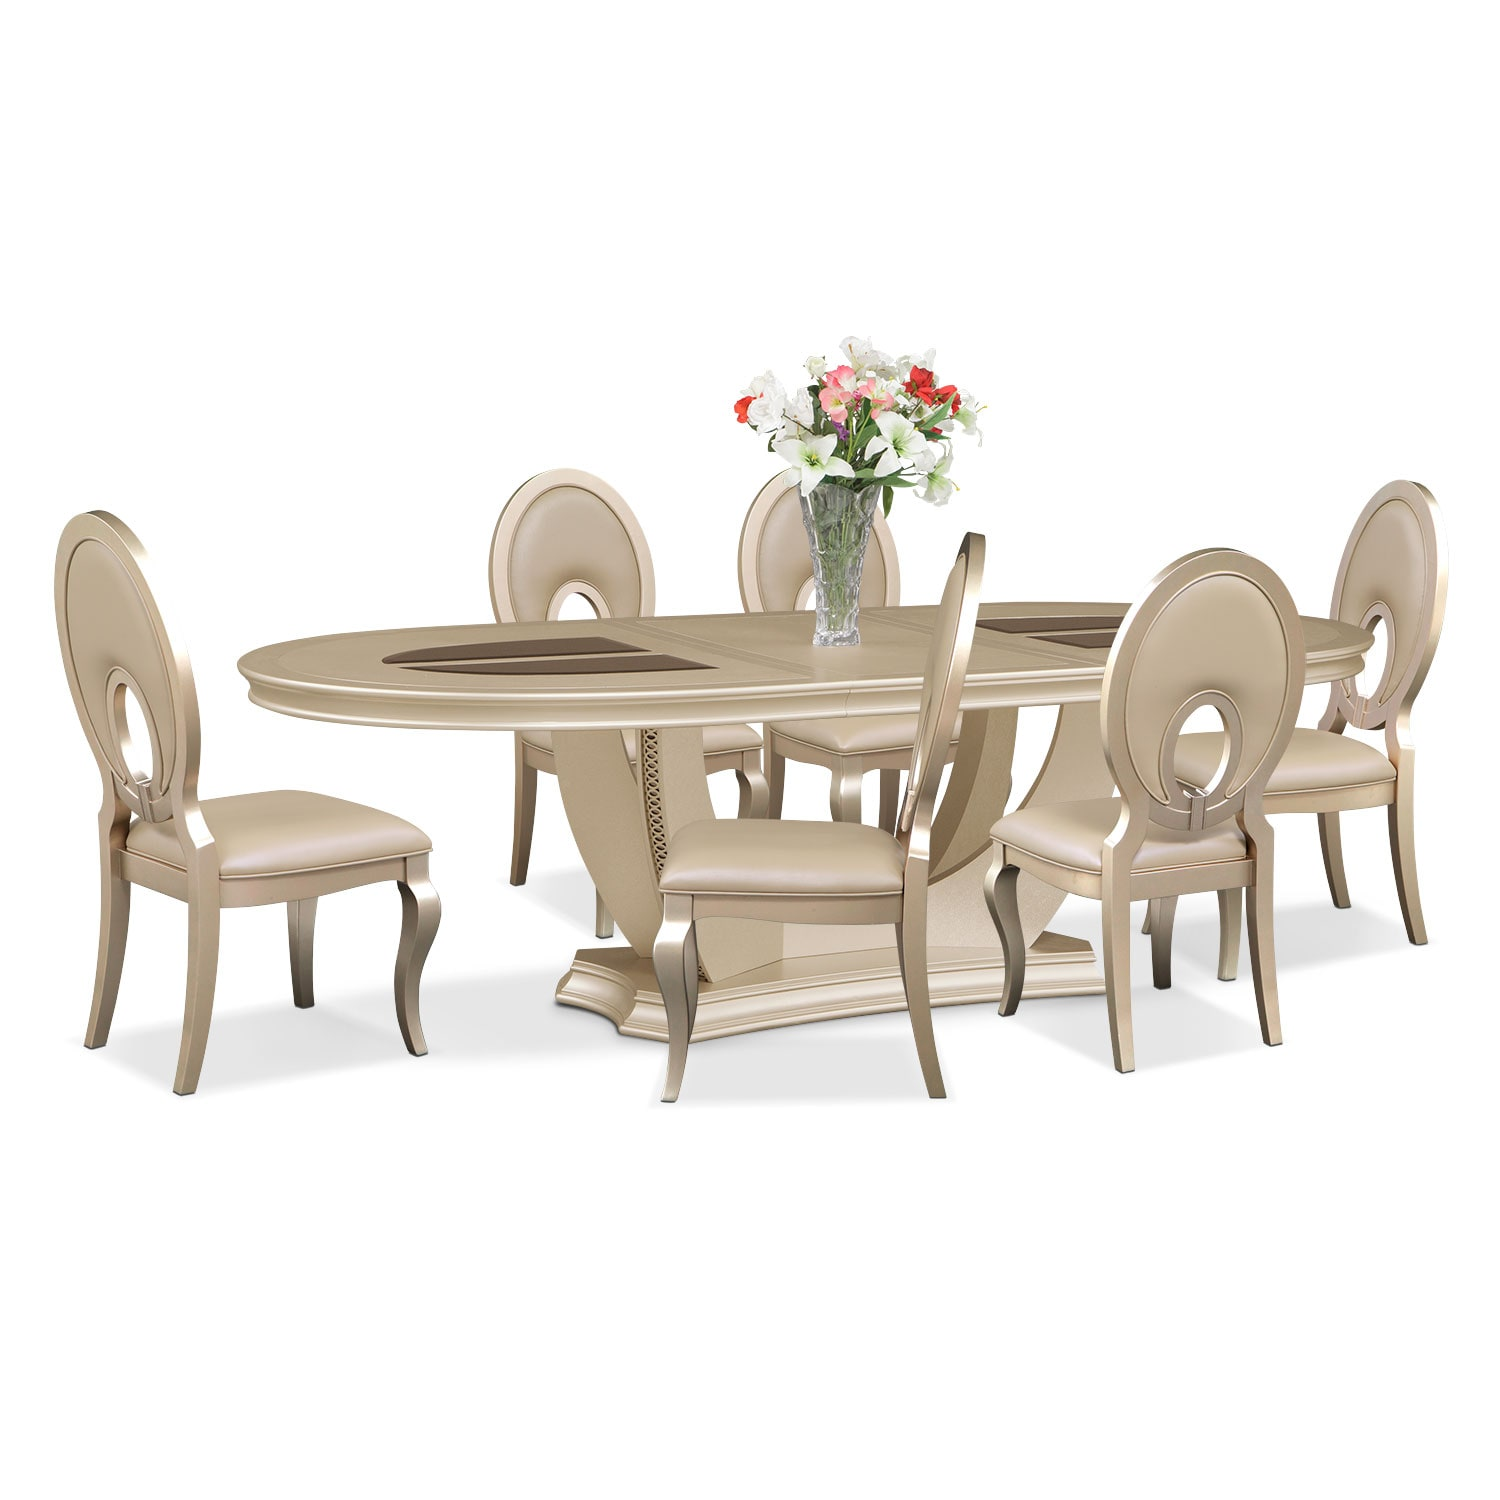 Allegro 7 Pc. Dining Room - Oval